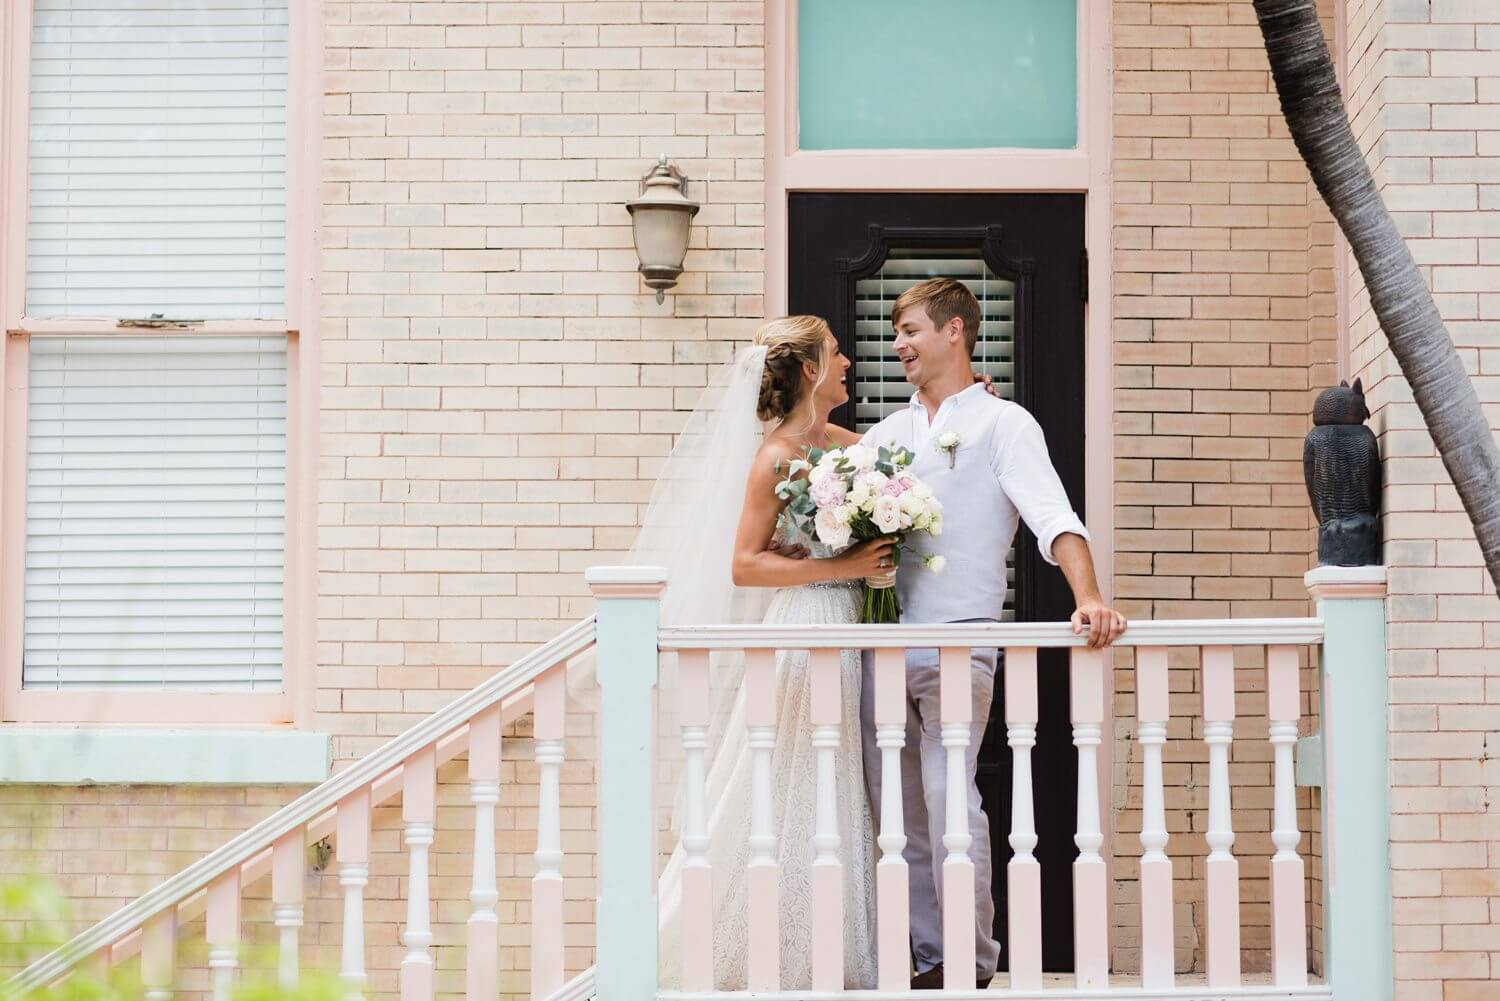 Freas Photography Southernmost House Wedding 54 - Boho Styled Key West Wedding at the Southernmost House in Key West, Florida